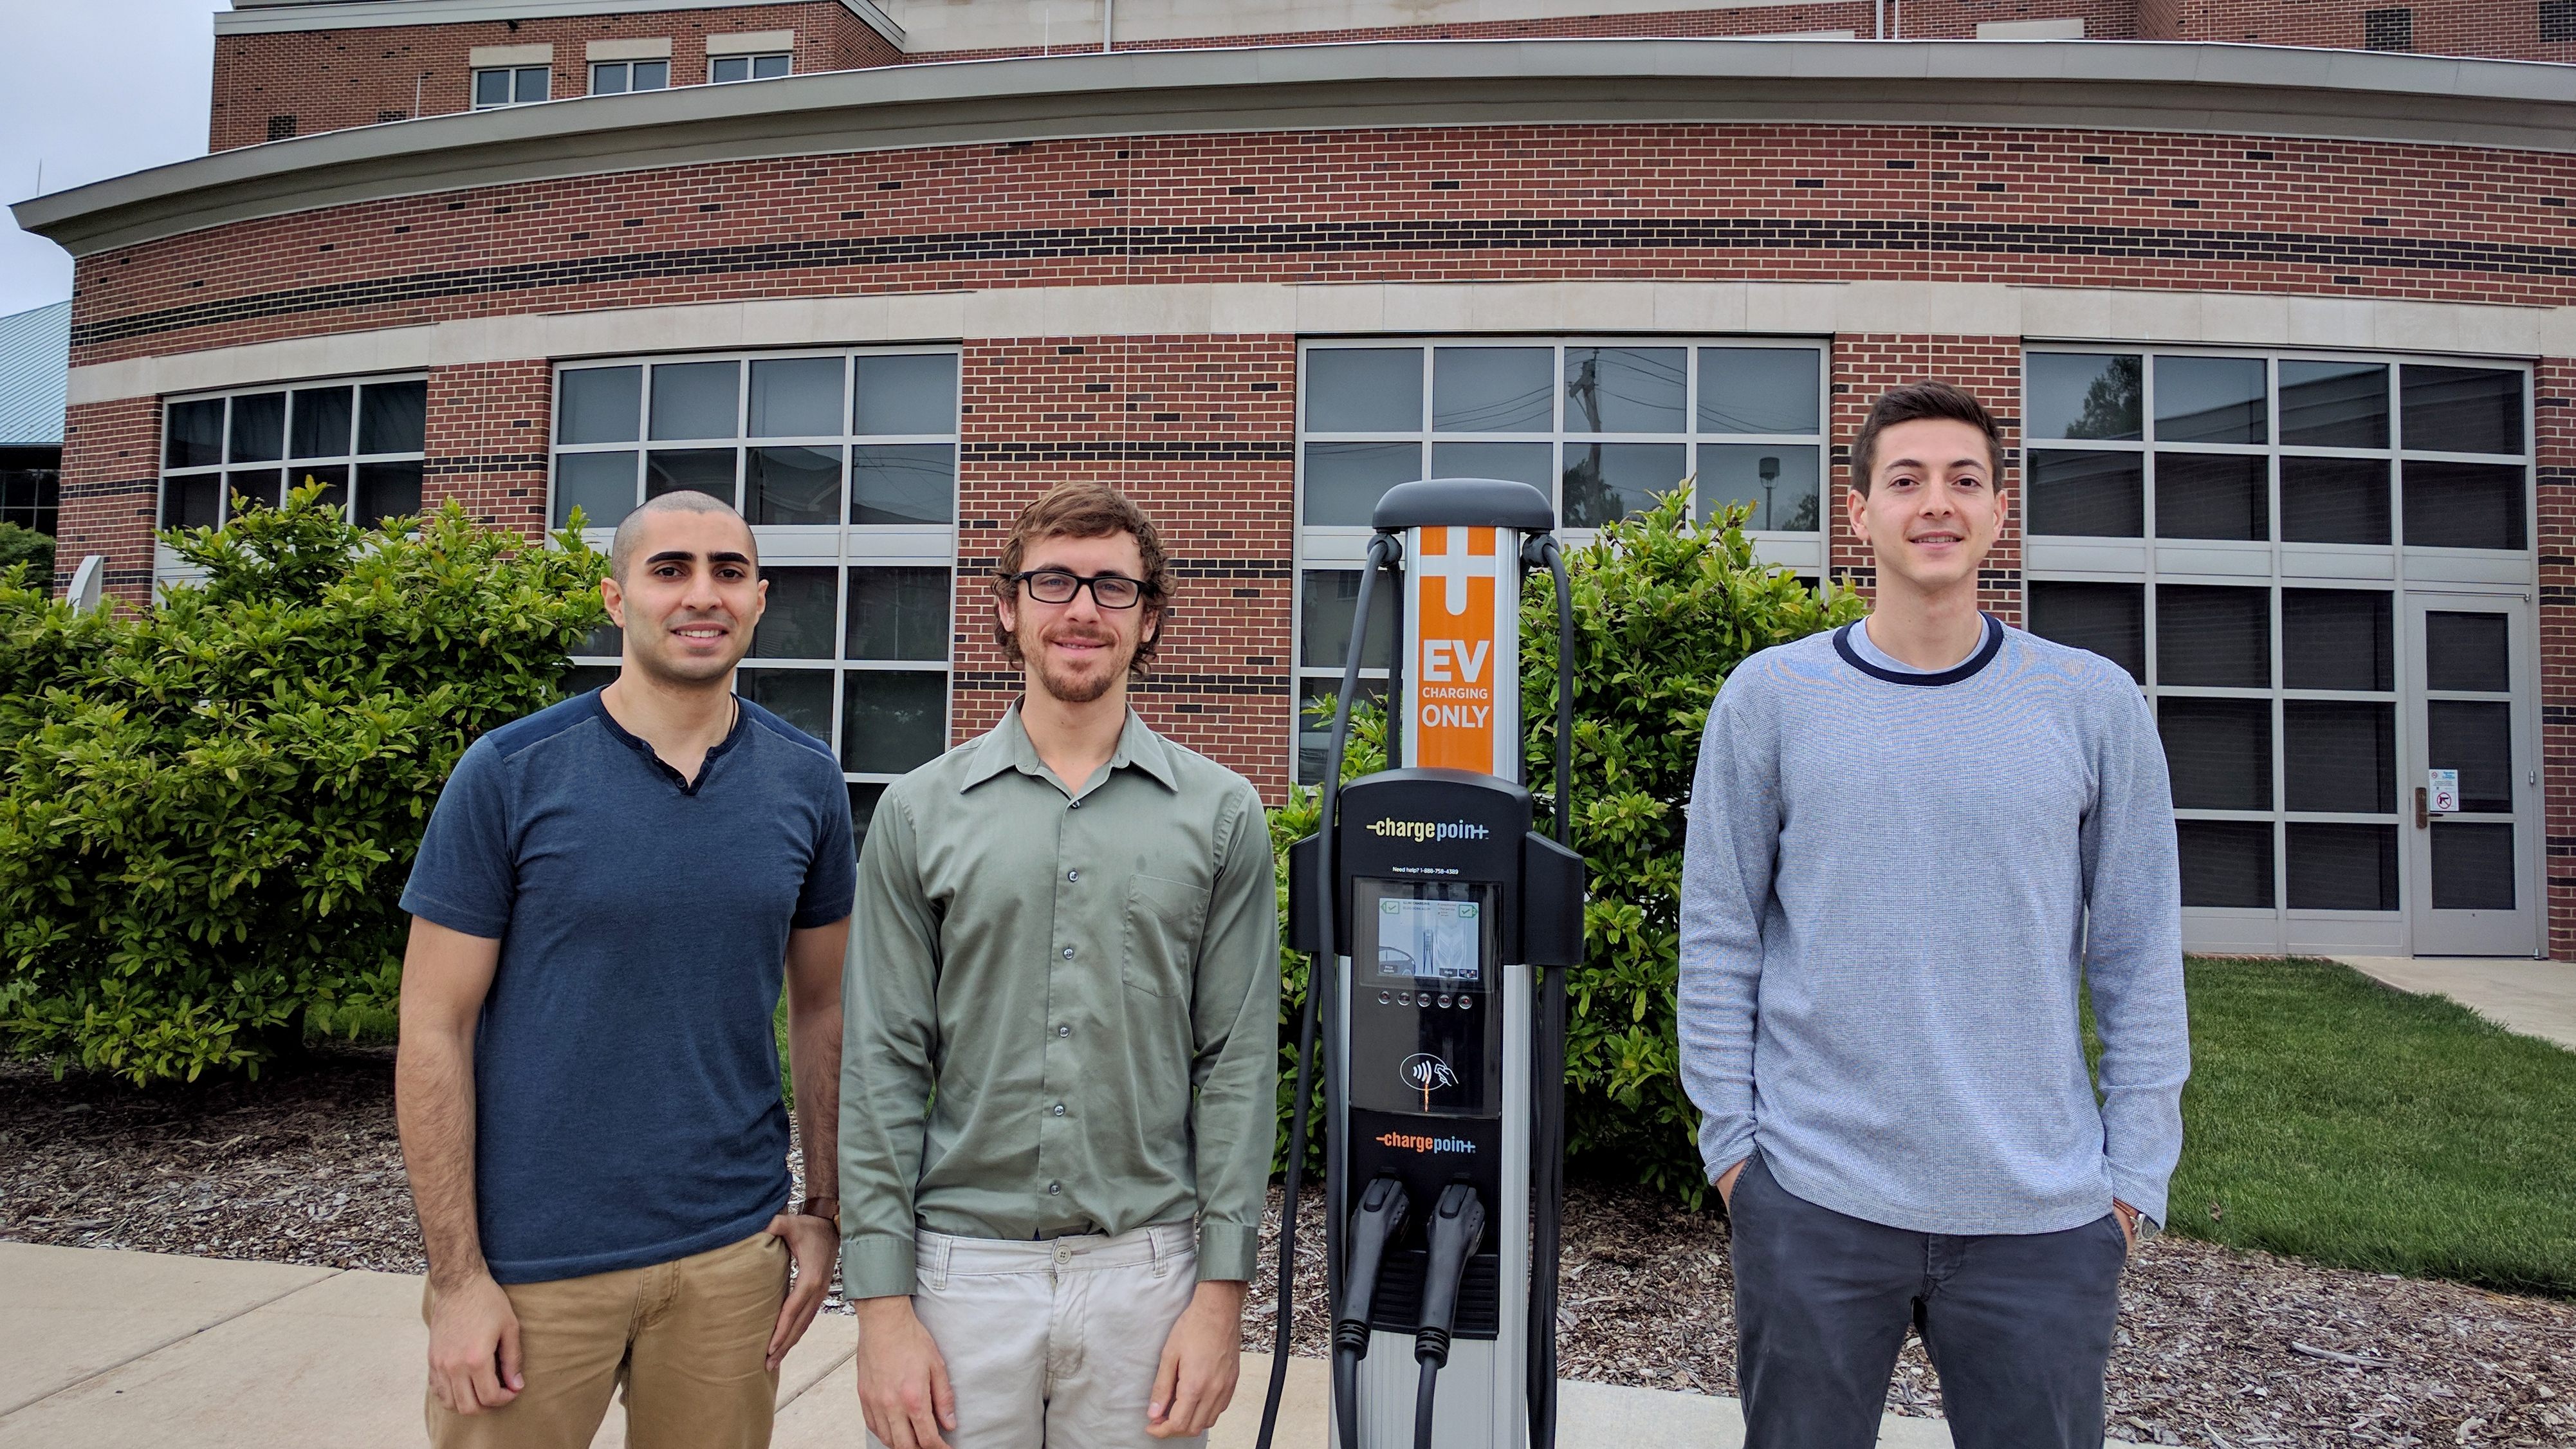 Energy Systems team proposes additional charging stations to increase electric vehicle usage on campus